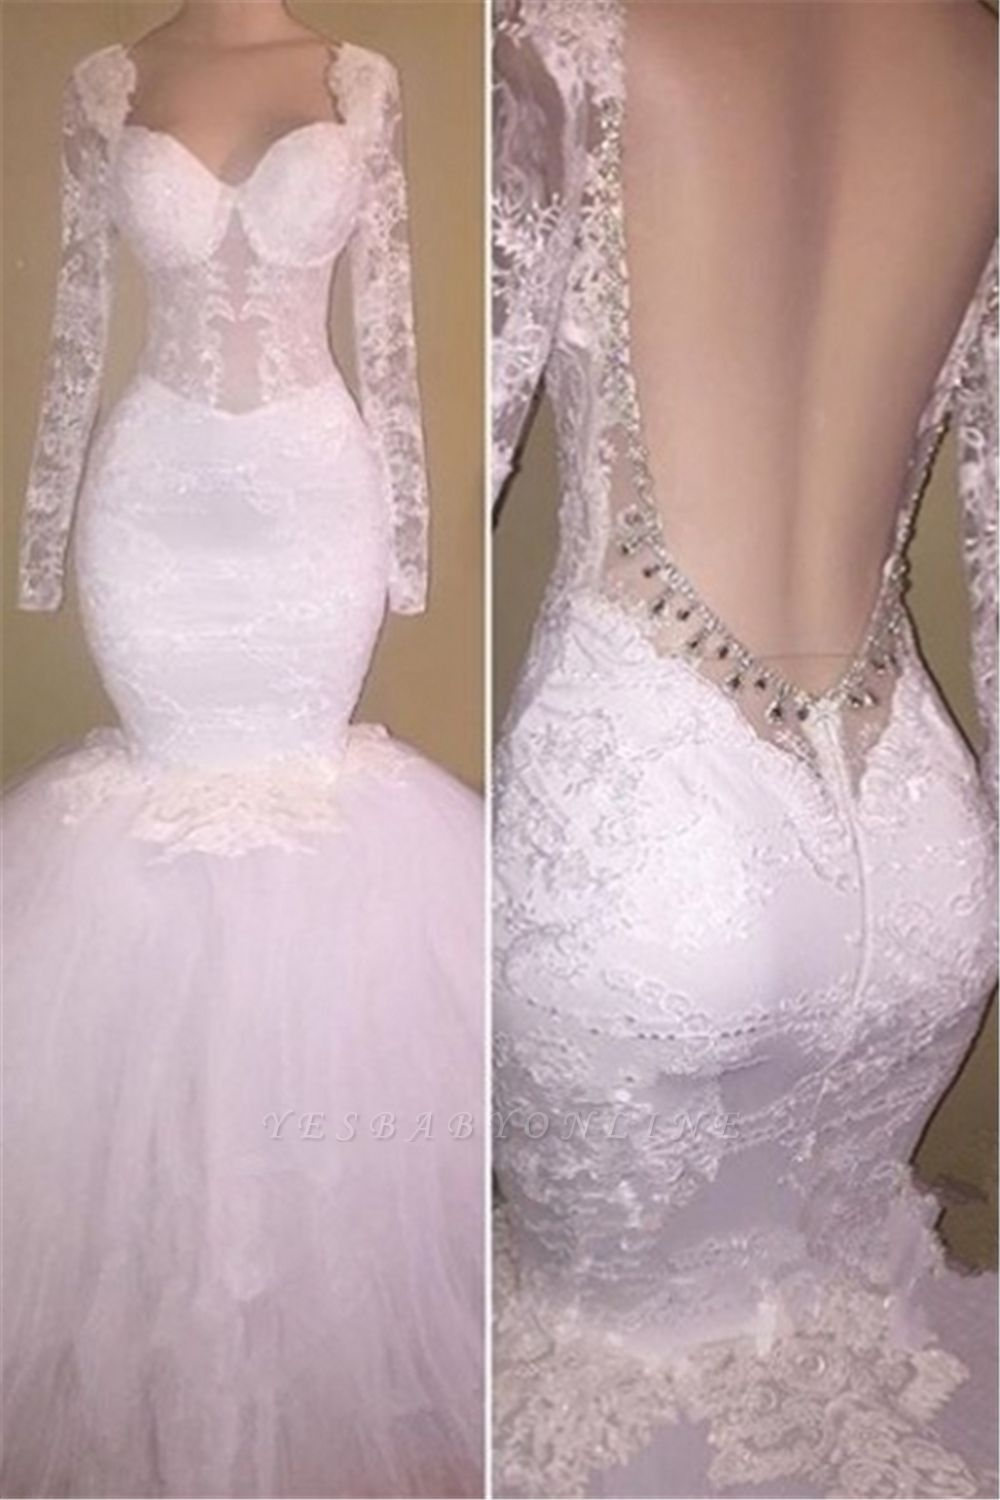 Long Sleeves Lace Prom Dresses Backless | White Mermaid Evening Gowns